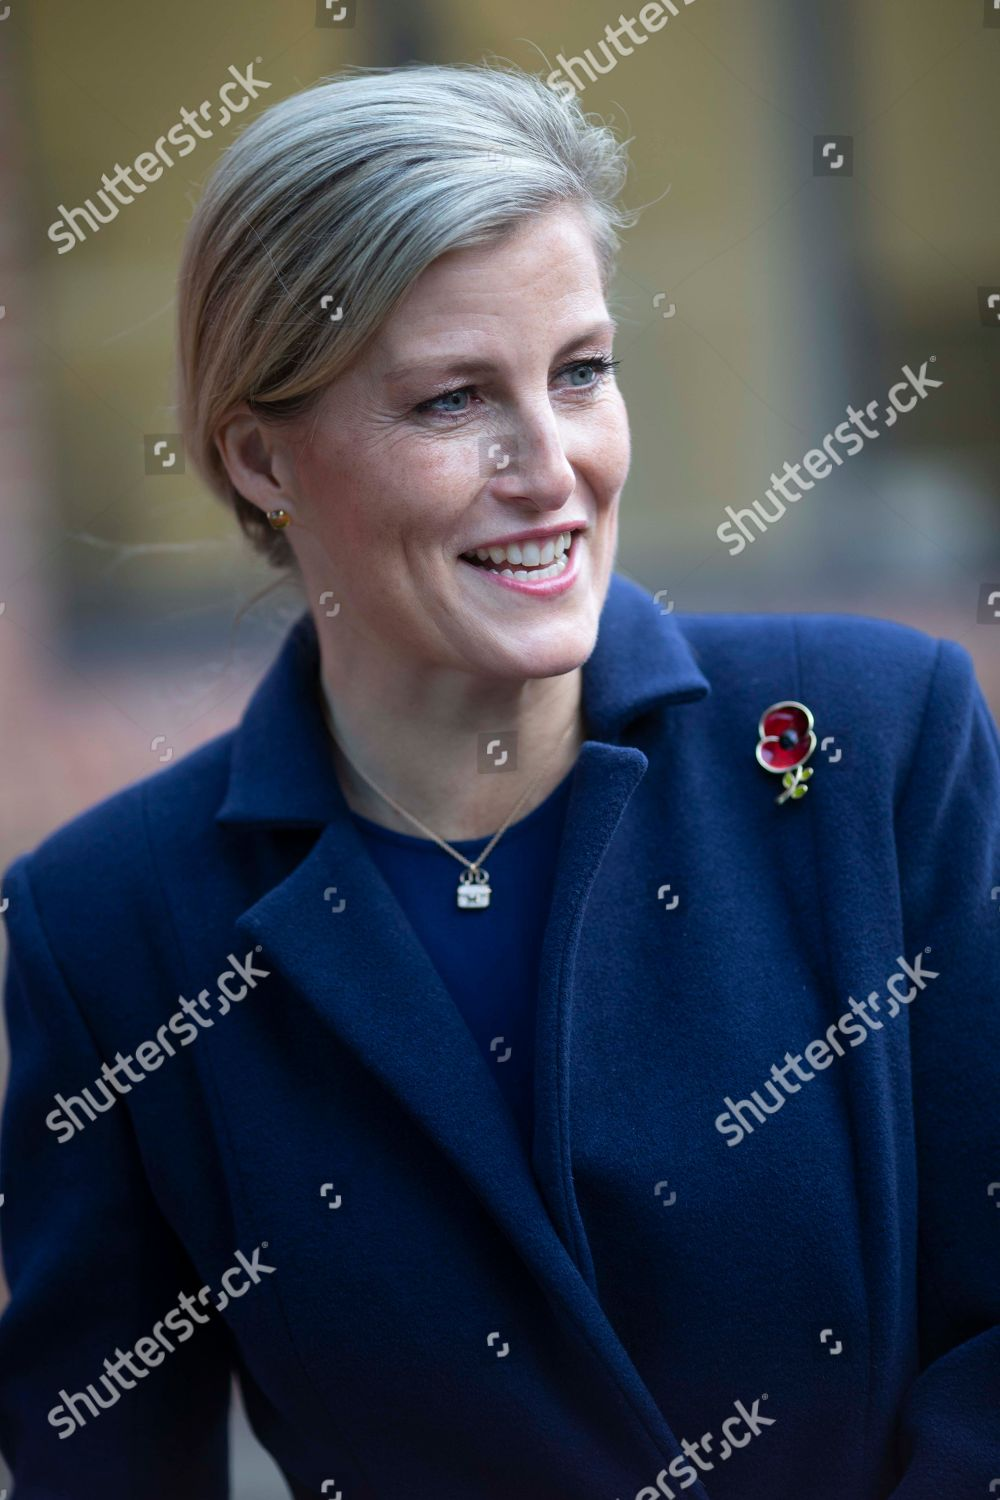 sophie-countess-of-wessex-opens-the-thames-valley-air-ambulance-headquarters-stokenchurch-buckinghamshire-uk-shutterstock-editorial-9968468x.jpg